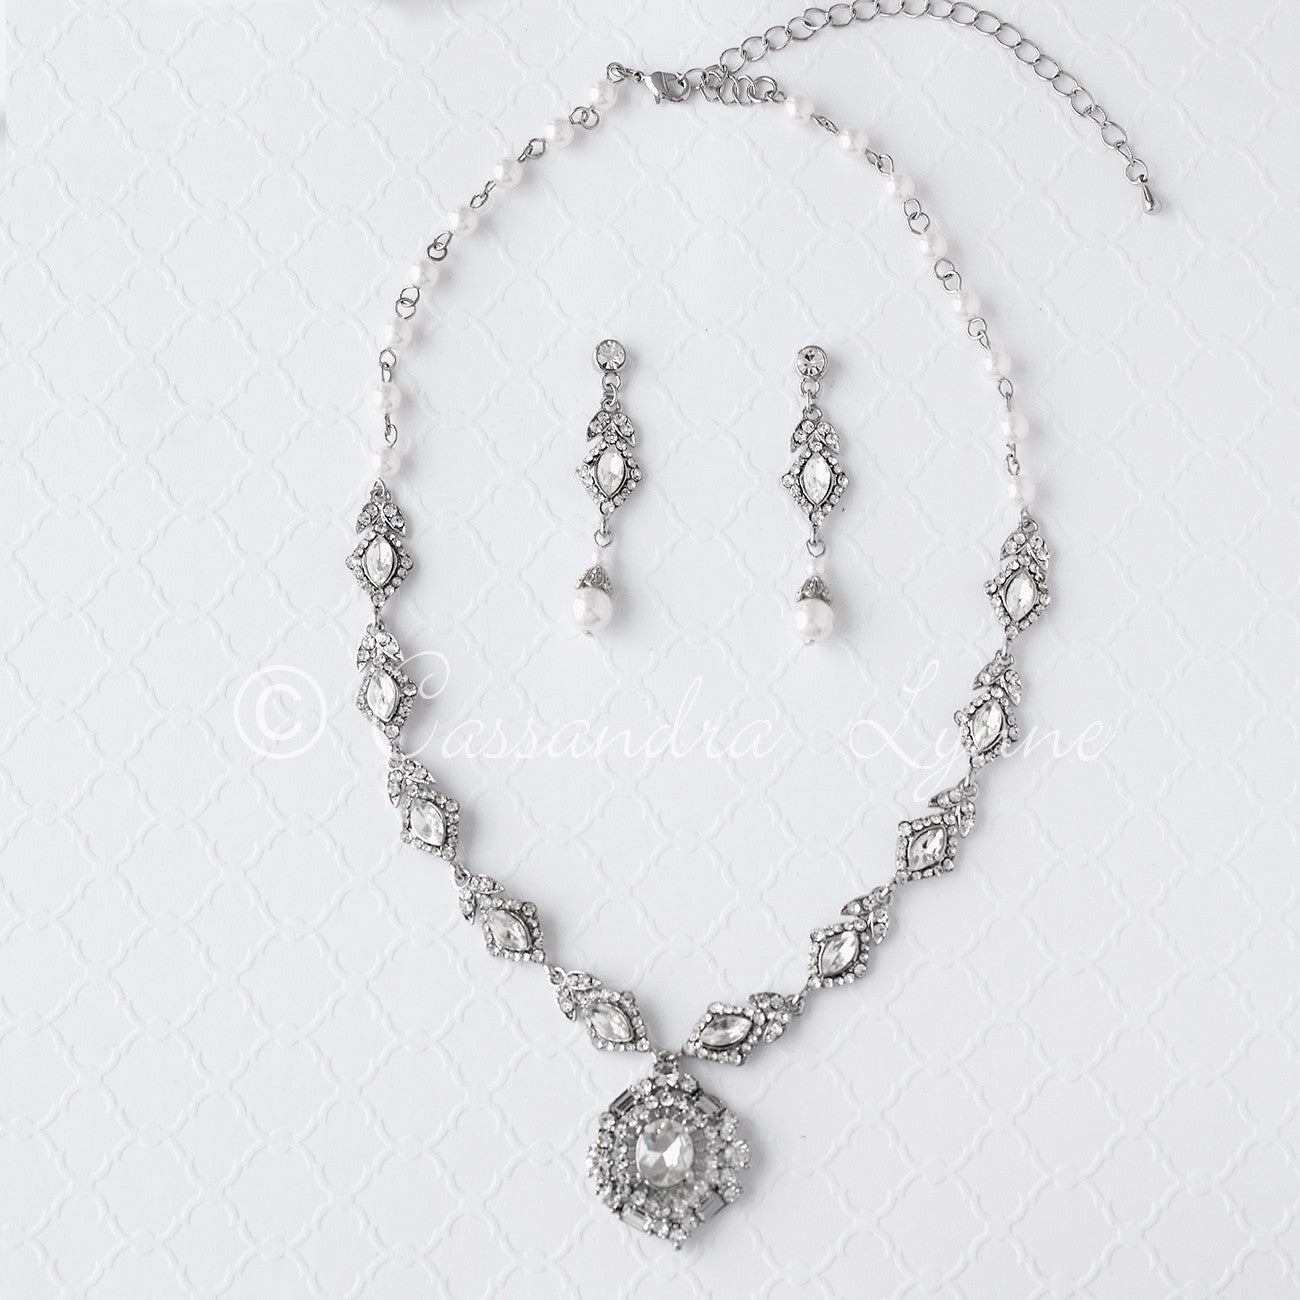 Vintage Wedding Necklace Set of Pearls and Jewels